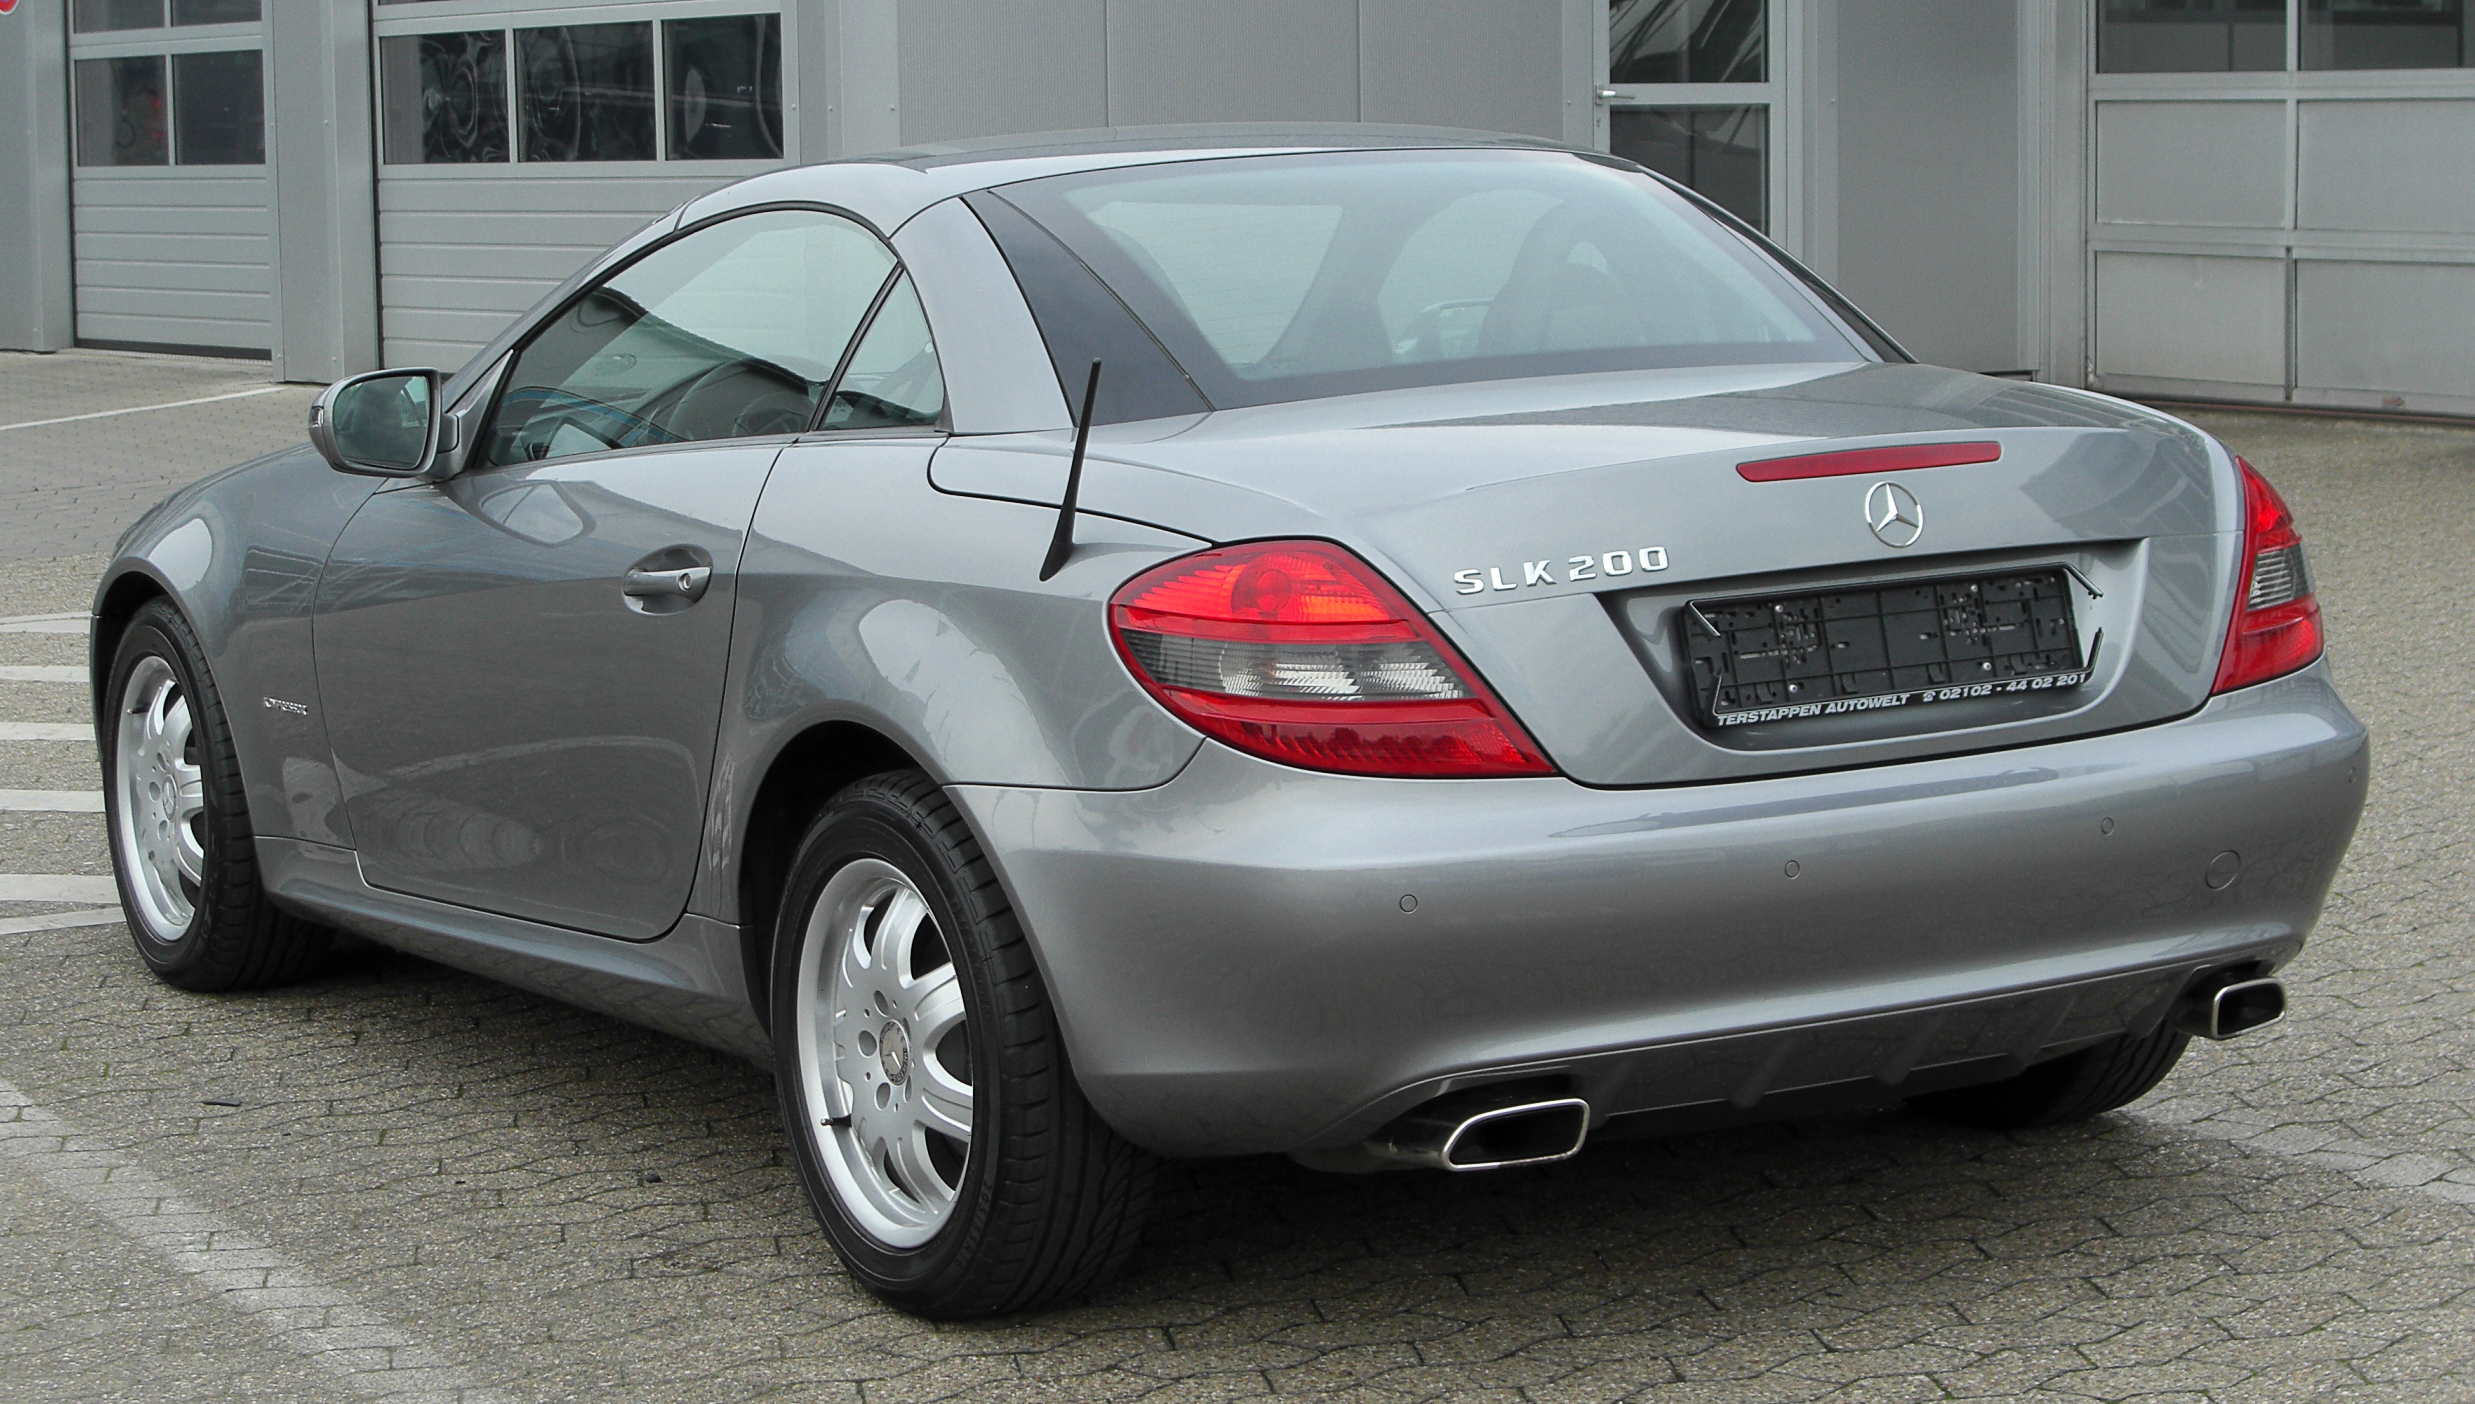 file mercedes slk 200 kompressor r171 facelift rear. Black Bedroom Furniture Sets. Home Design Ideas